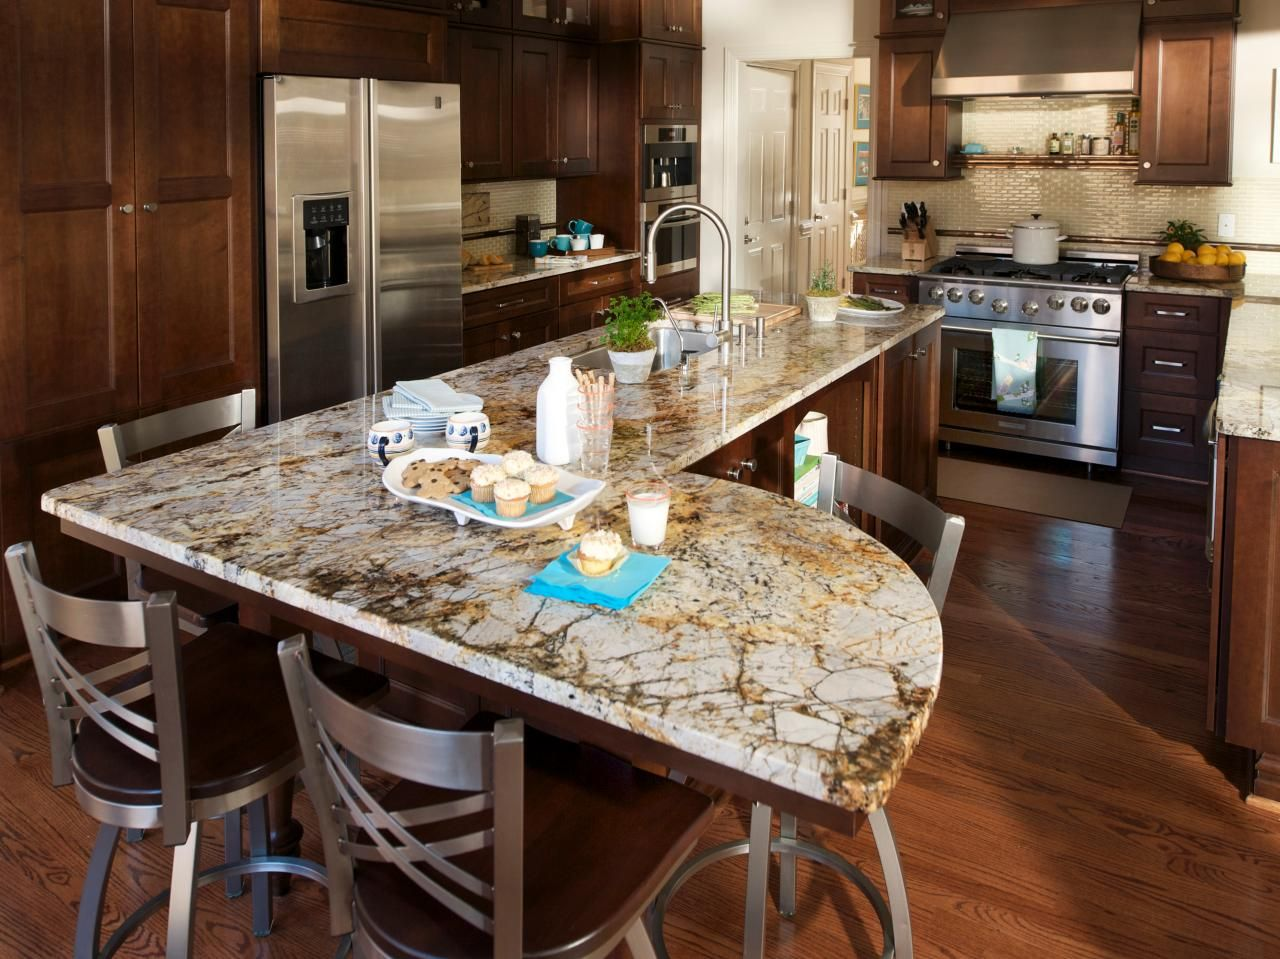 Fixer upper kitchens with dark cabinets - 17 Best Images About Kitchen Designs On Pinterest Transitional Kitchen Cabinet Lights And Wine Chiller